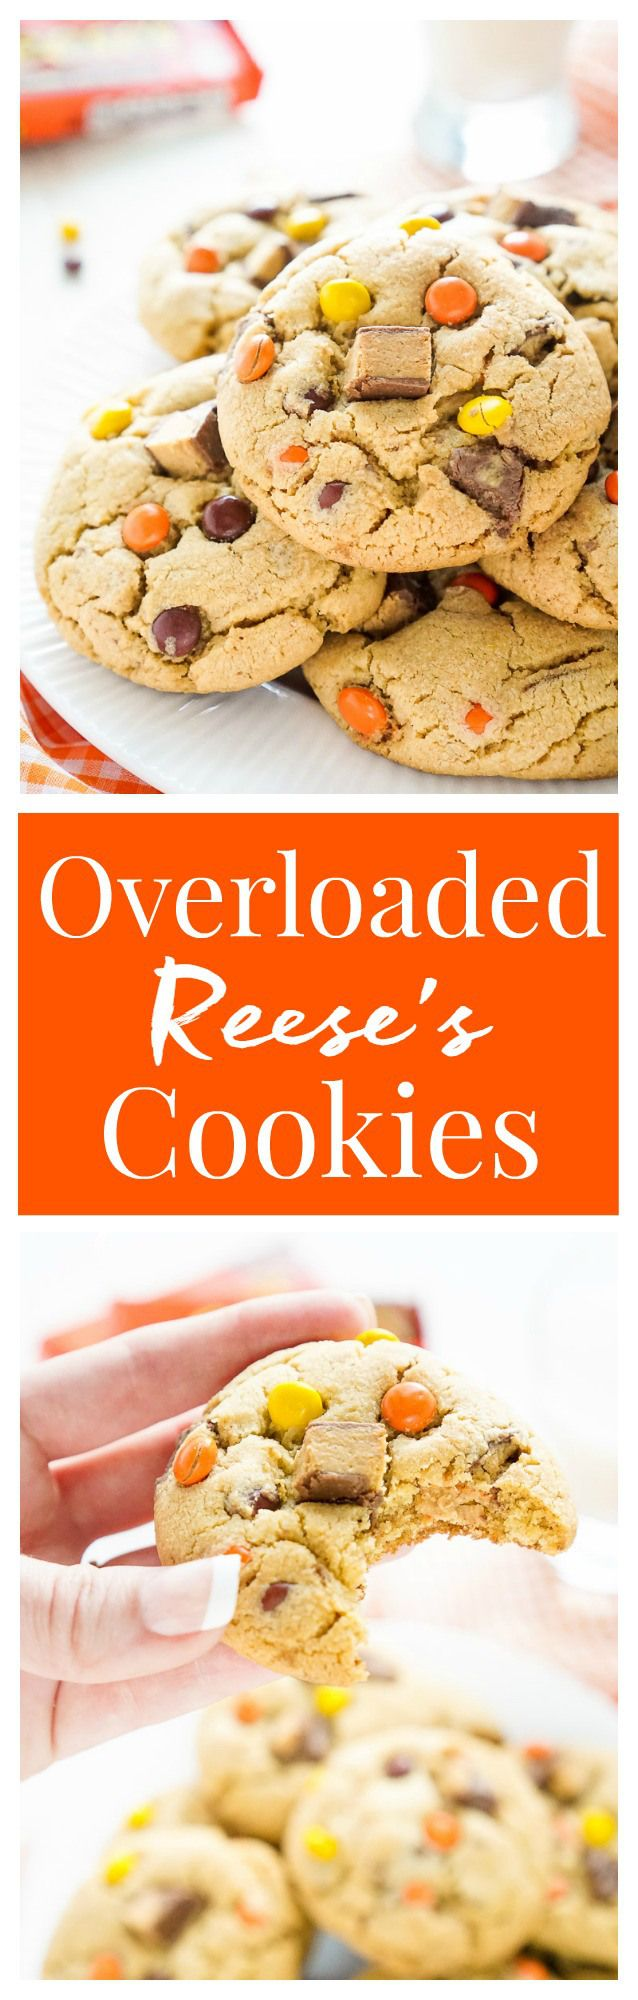 These Overloaded Reese's Peanut Butter Pudding Cookies are a sweet peanut butter…